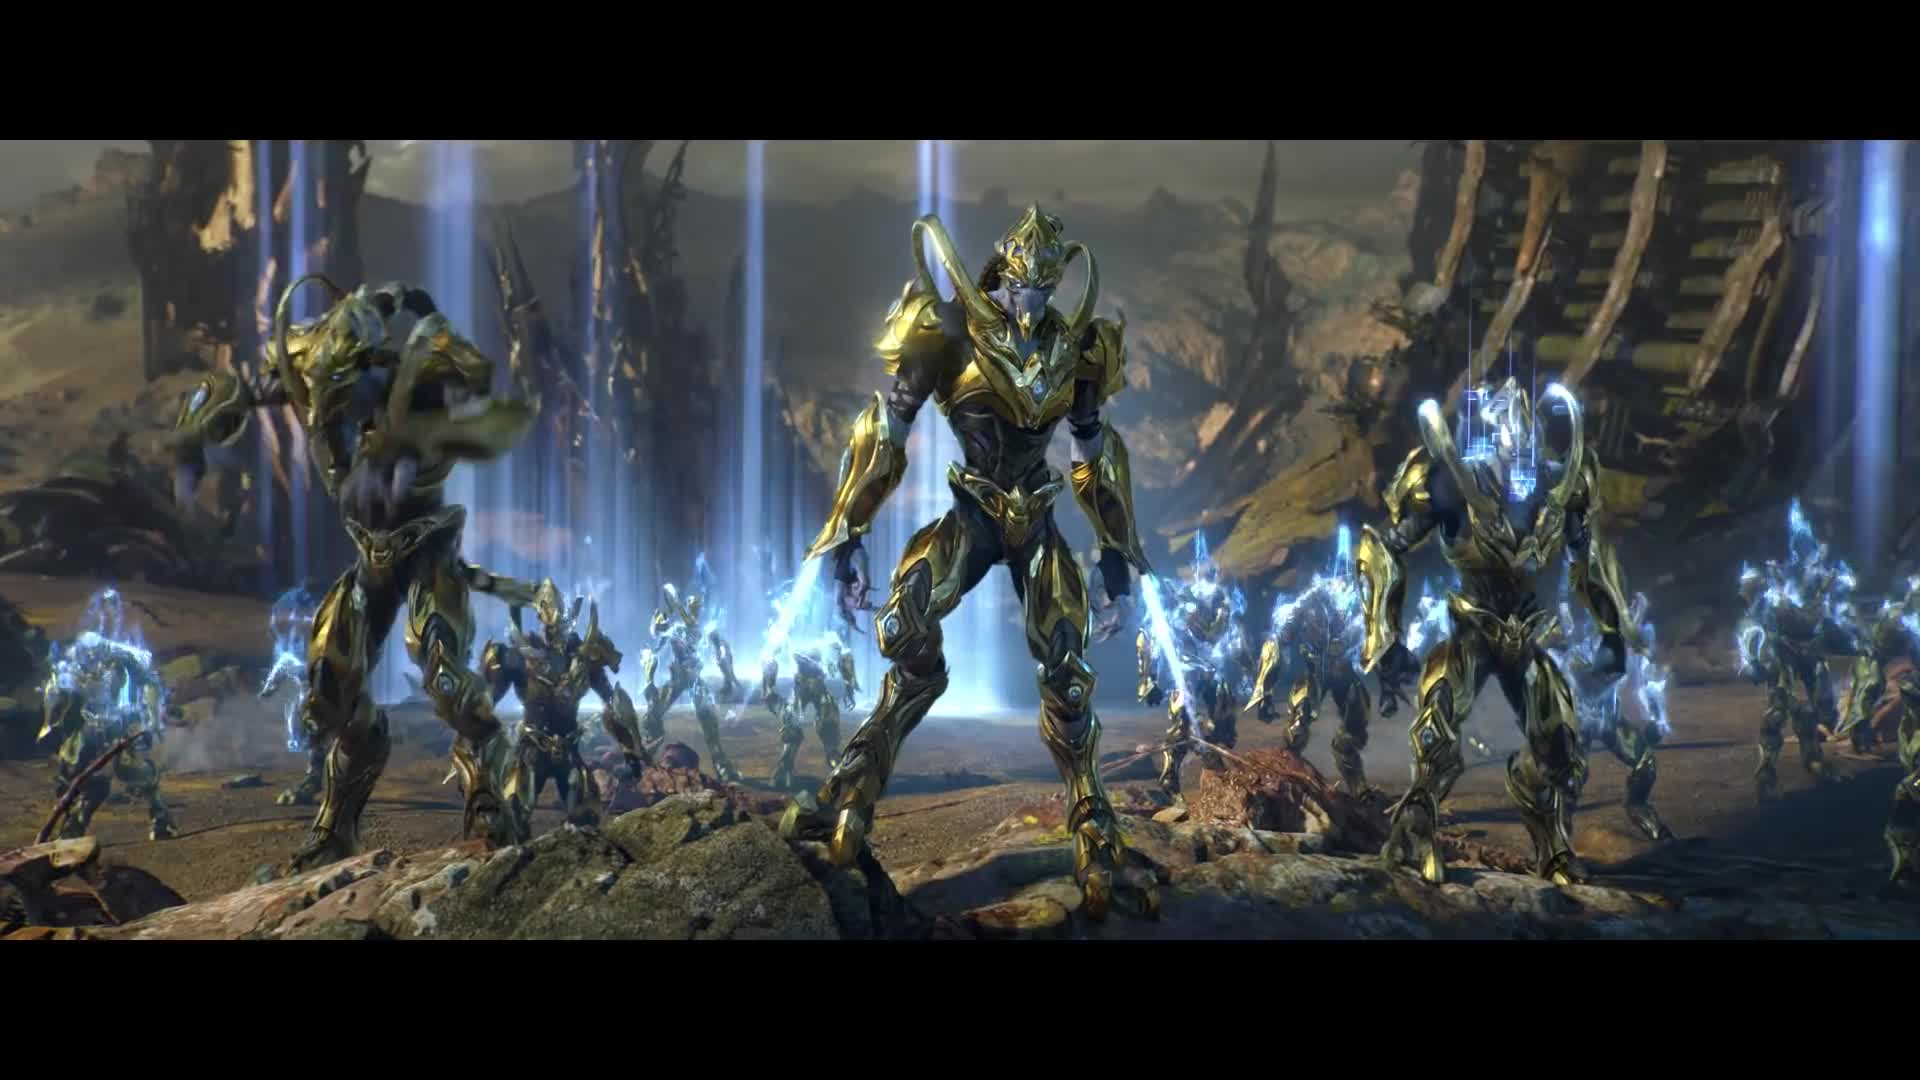 Starcraft Ii Legacy Of The Void Opening Cinematic Gif By S3rch446